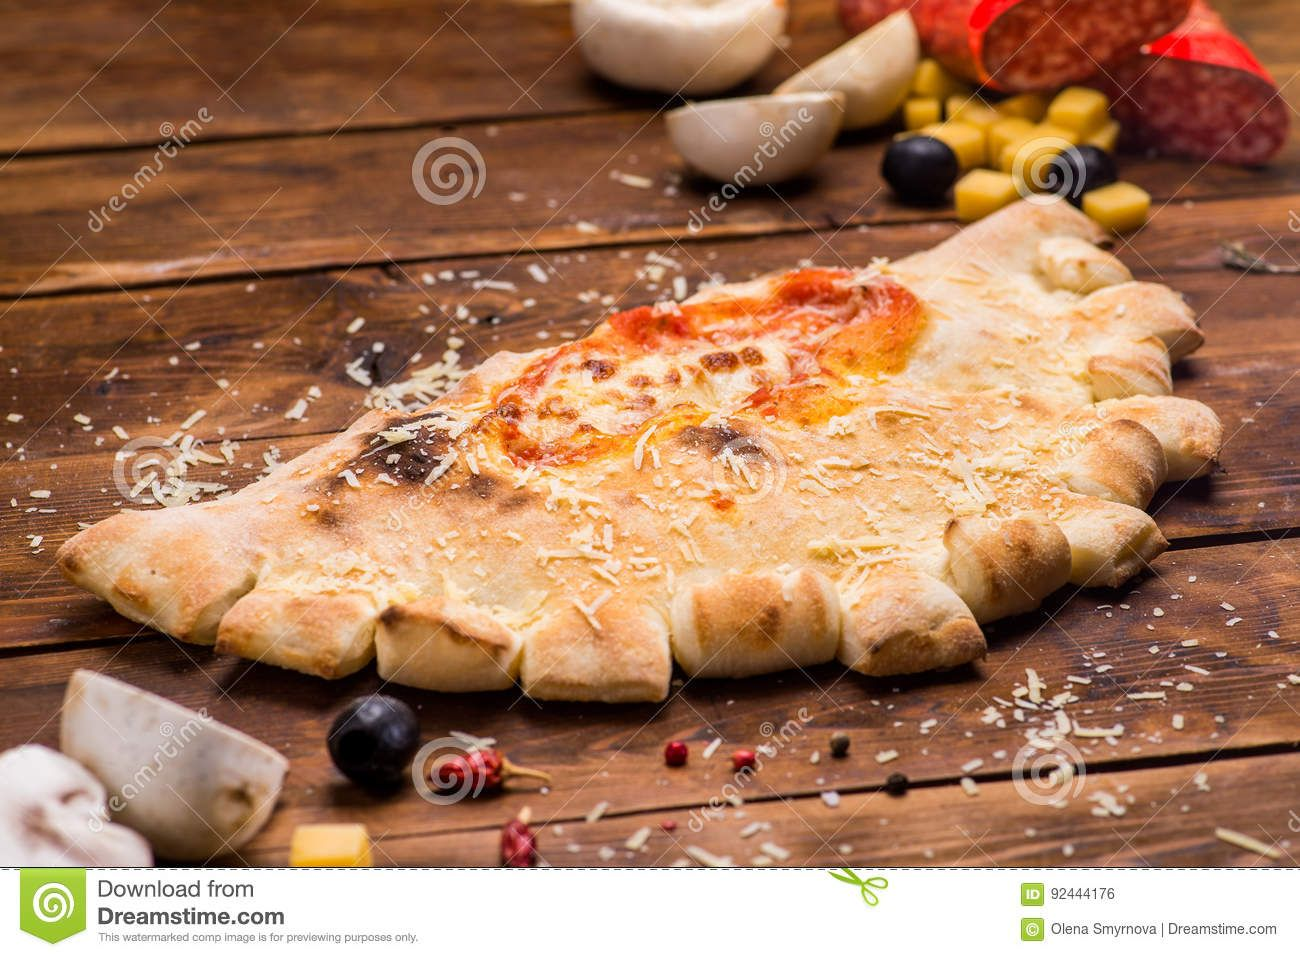 Pizza stock photo. Image of salami, pizza, pastry, bacon